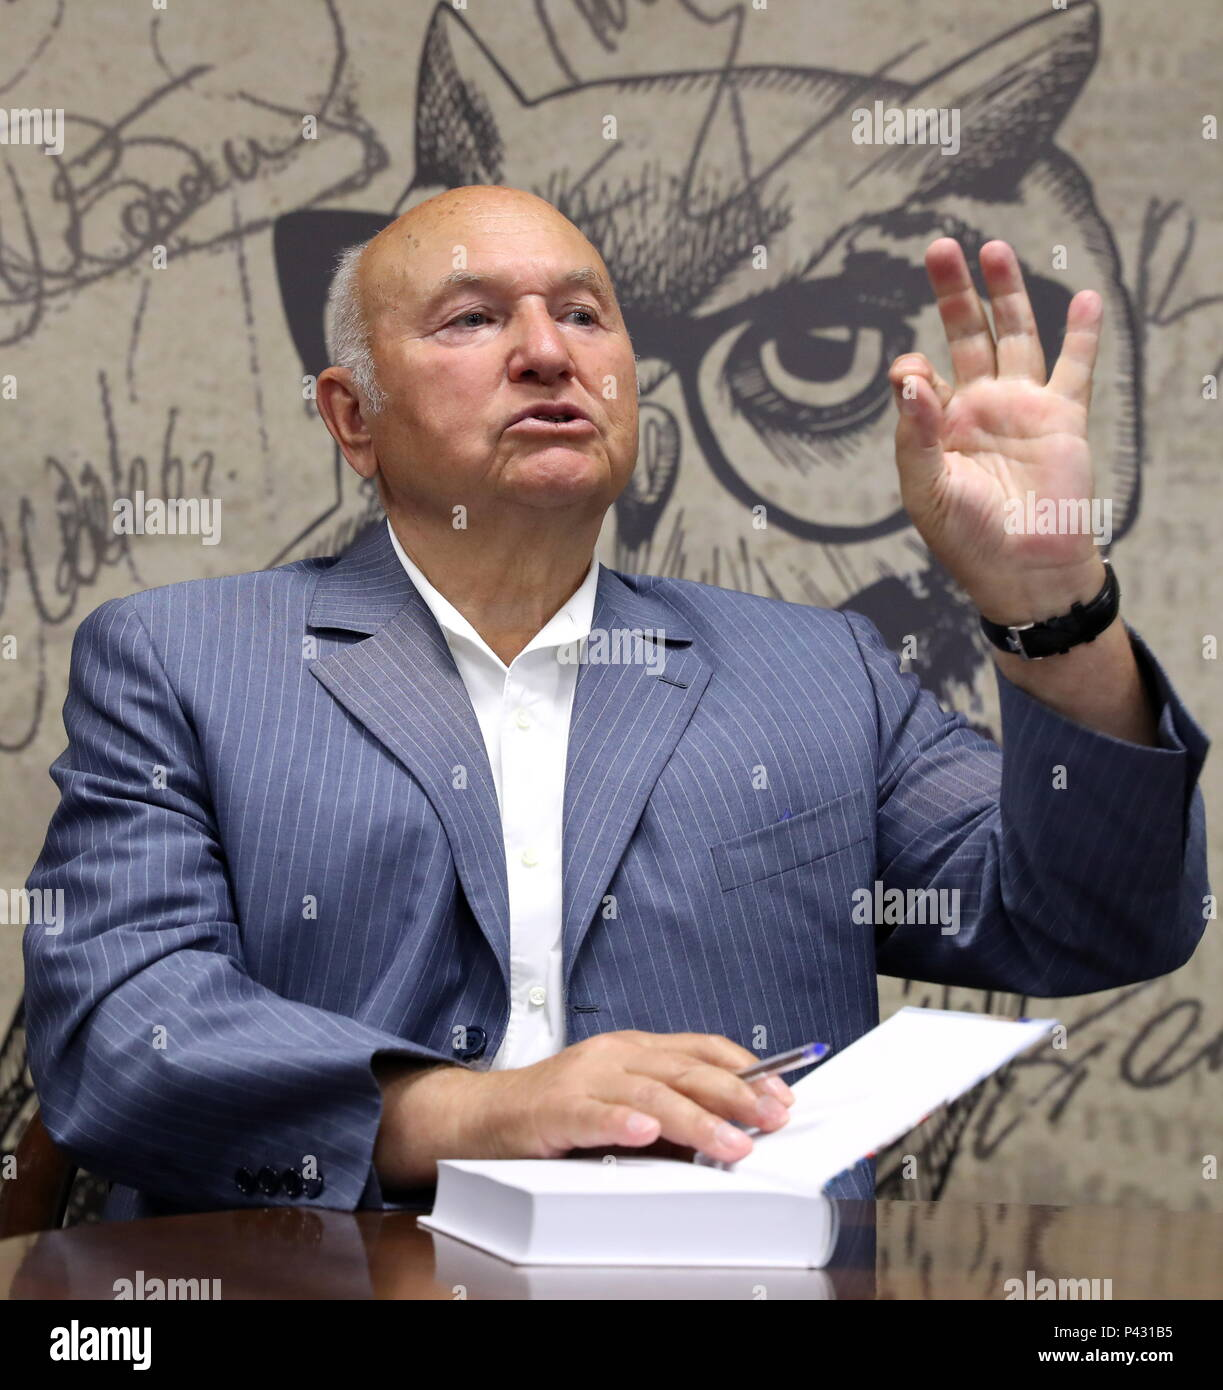 In Moscow, the former mayor Luzhkov was hospitalized 12/23/2016 46